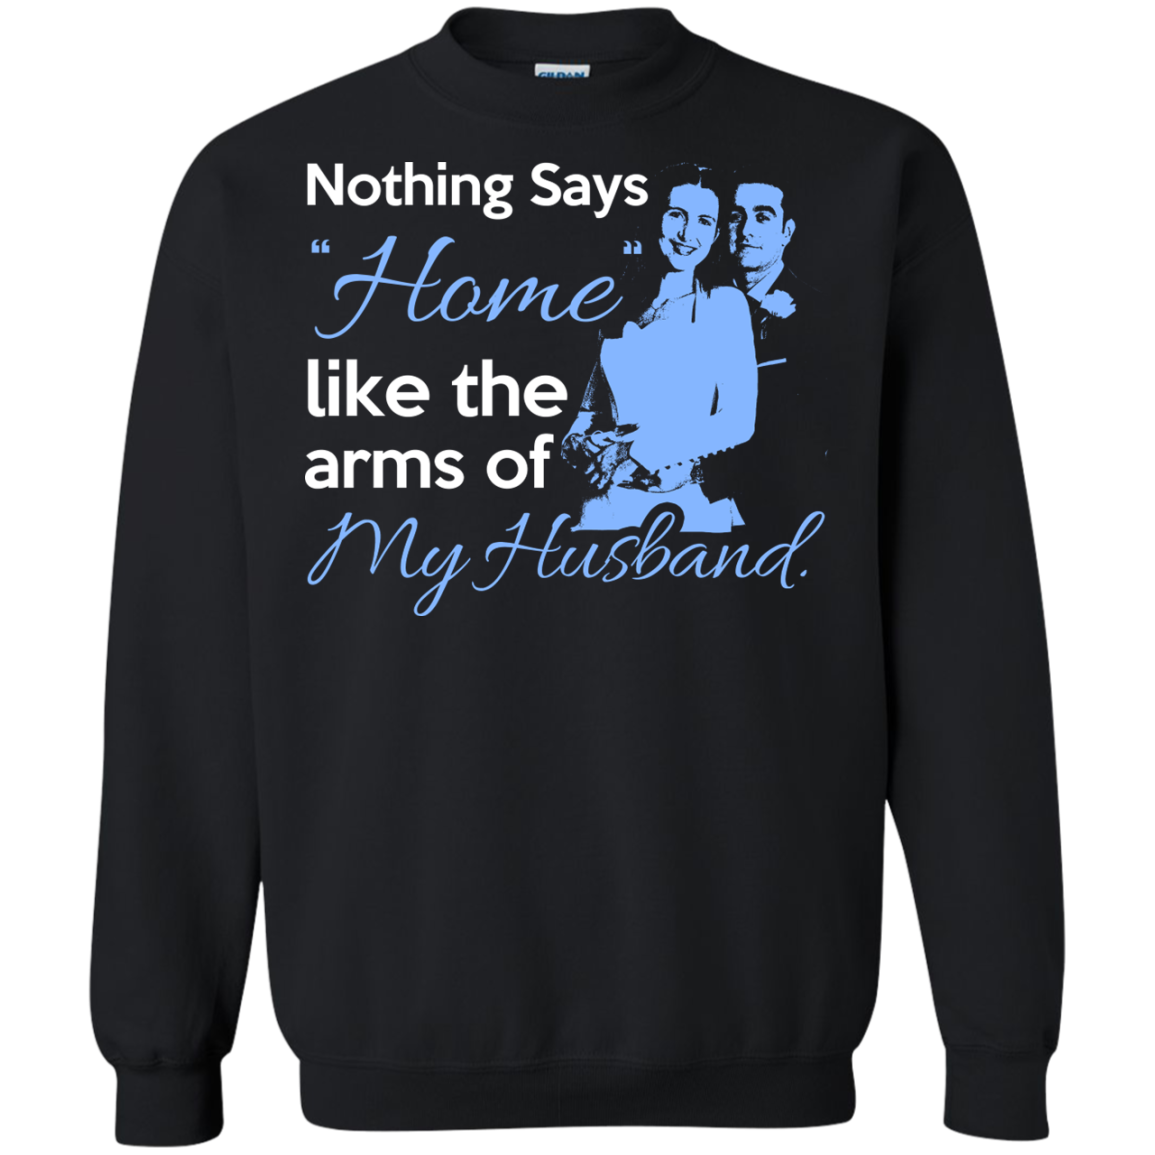 Nothing Says Home Like the Arms of my Husband Sweatshirt